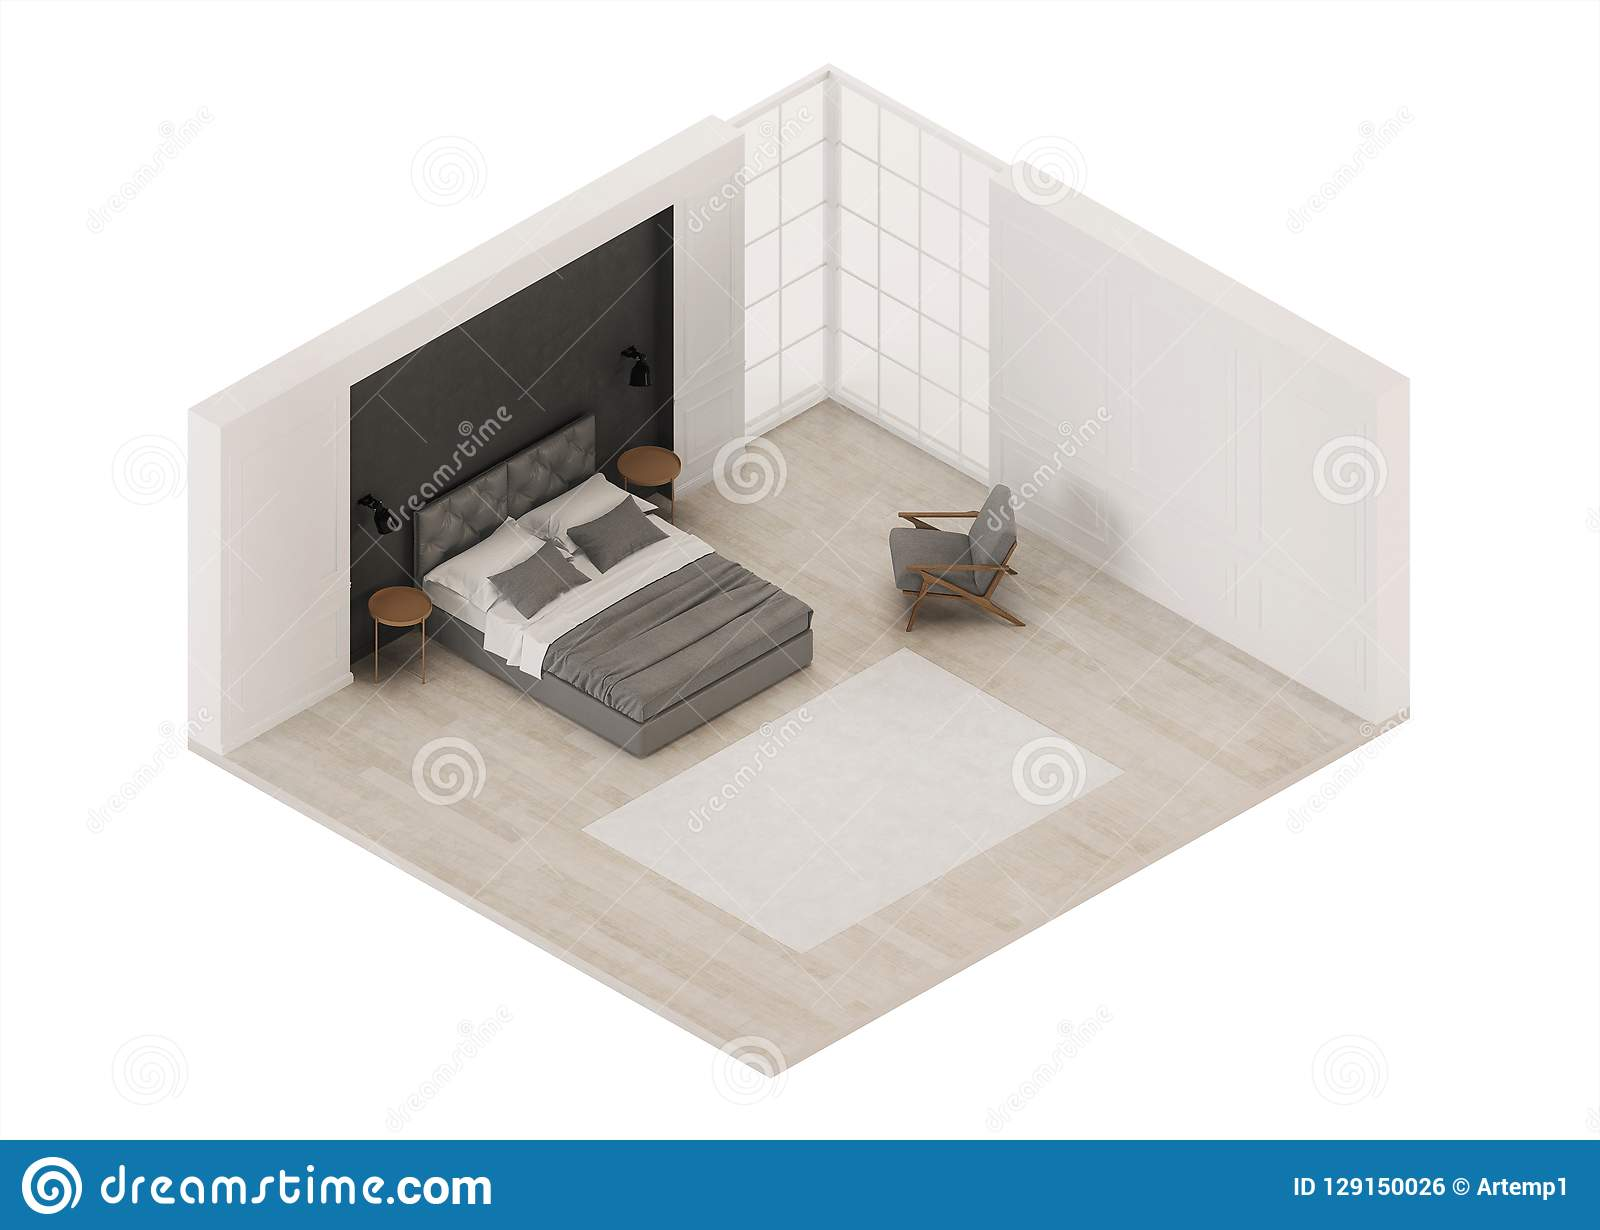 Bedroom Interior Modern Classic Orthogonal Projection View From